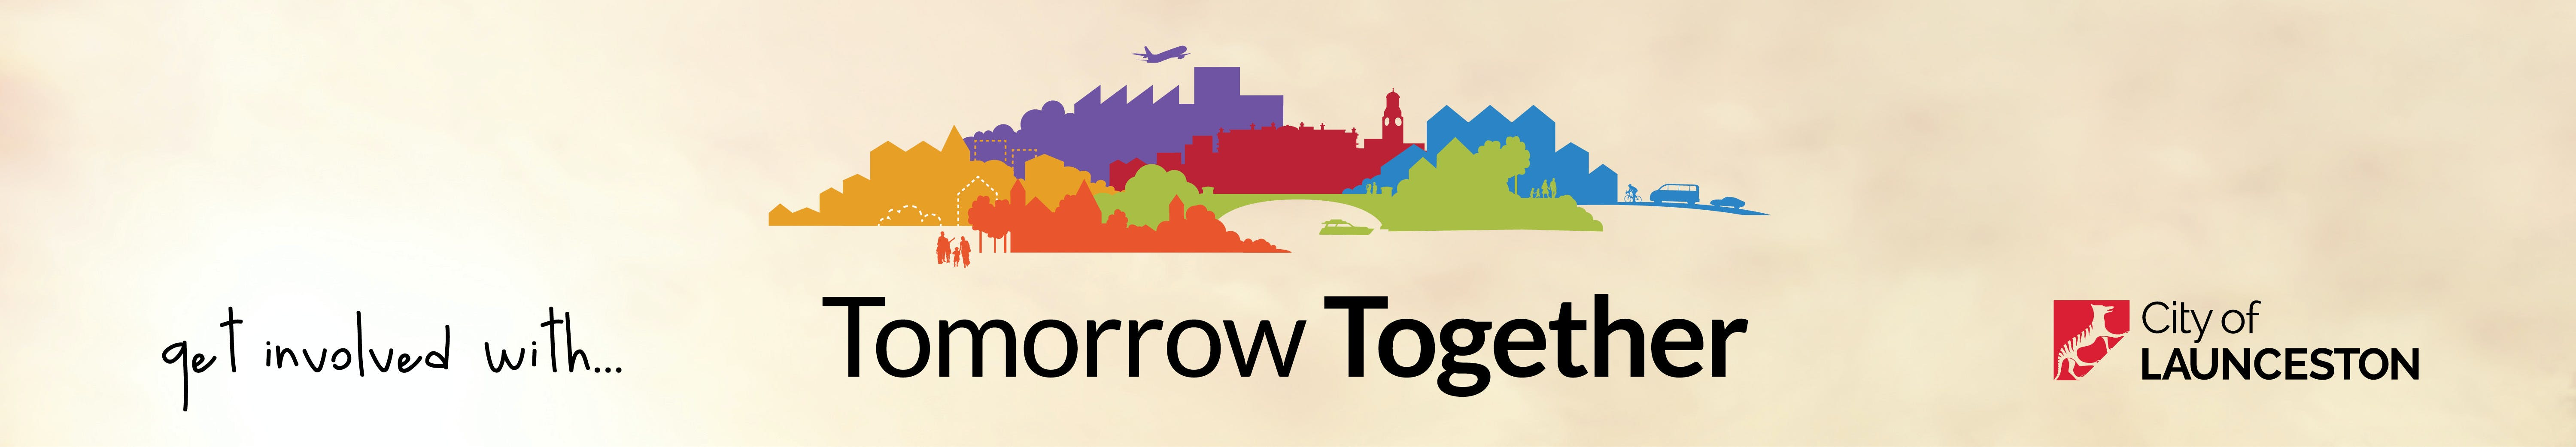 Get involved with Tomorrow Together